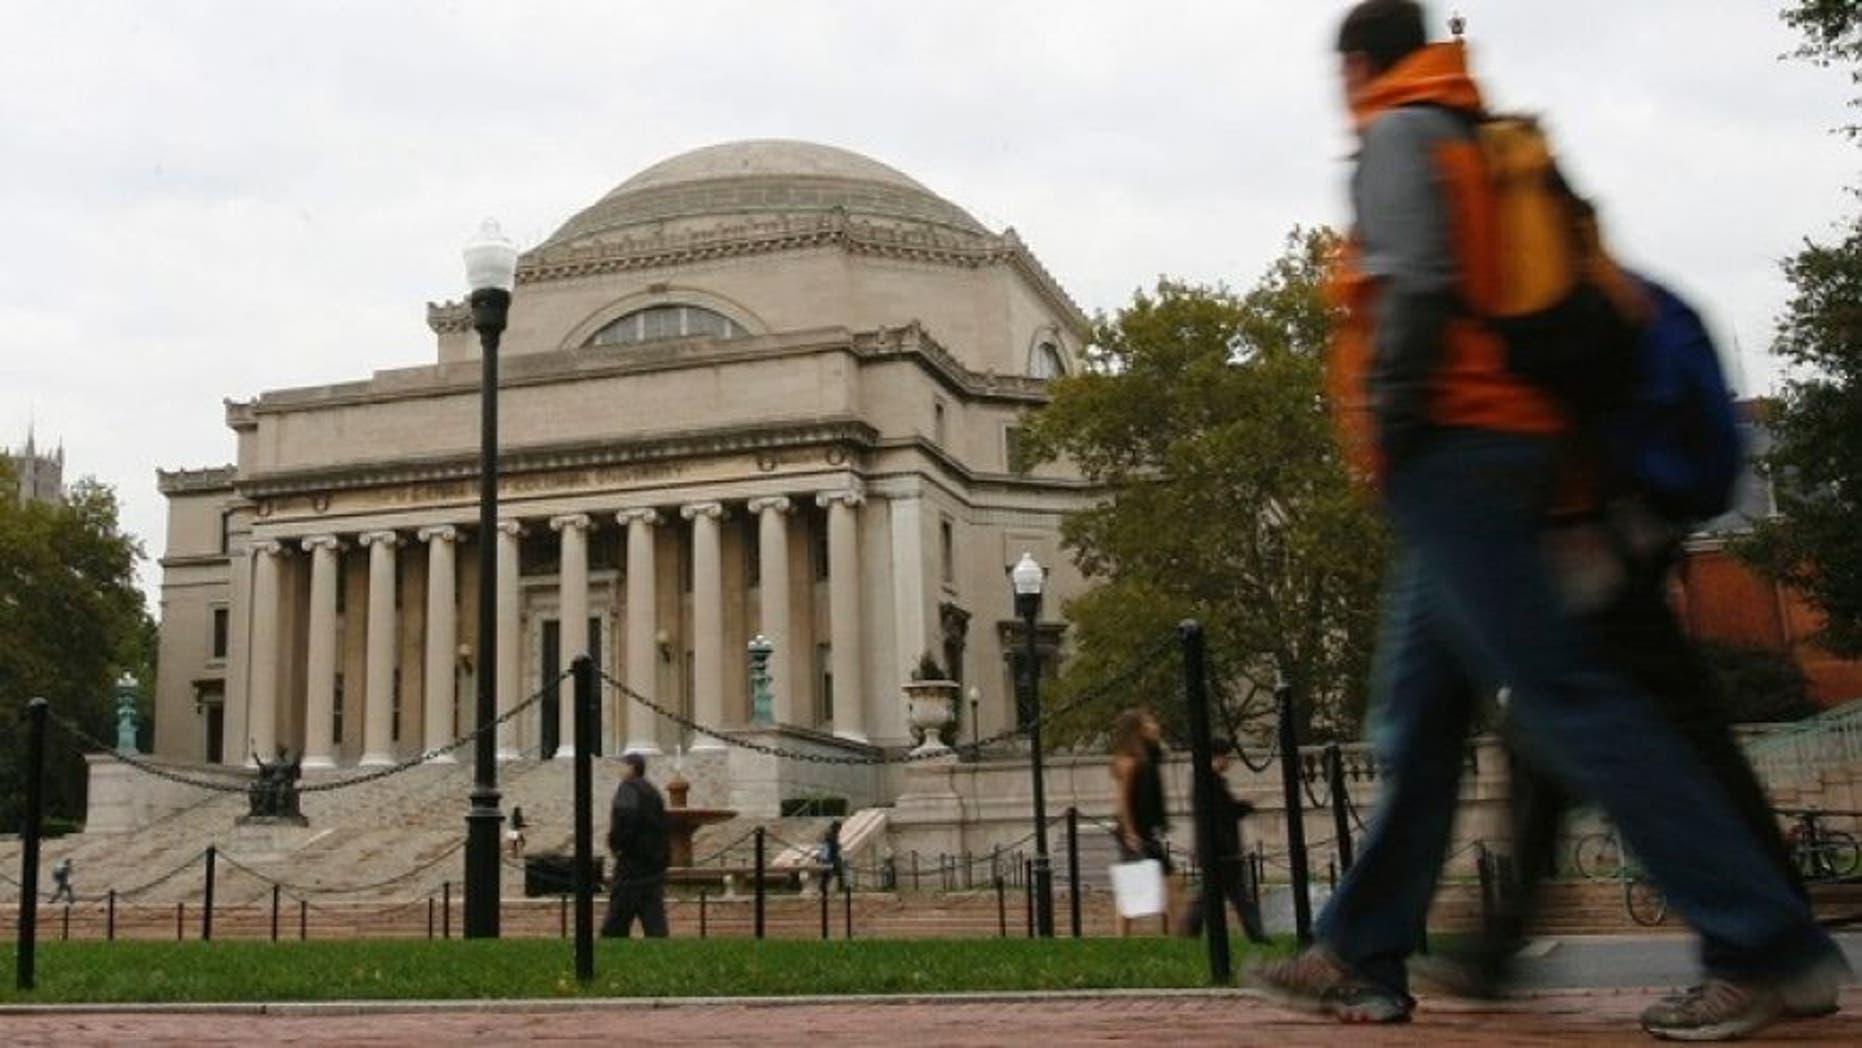 Low Memorial Library at New York's Columbia University, where Prof. William V. Harris ended a 50-year teaching career amid sexual harassment allegations.